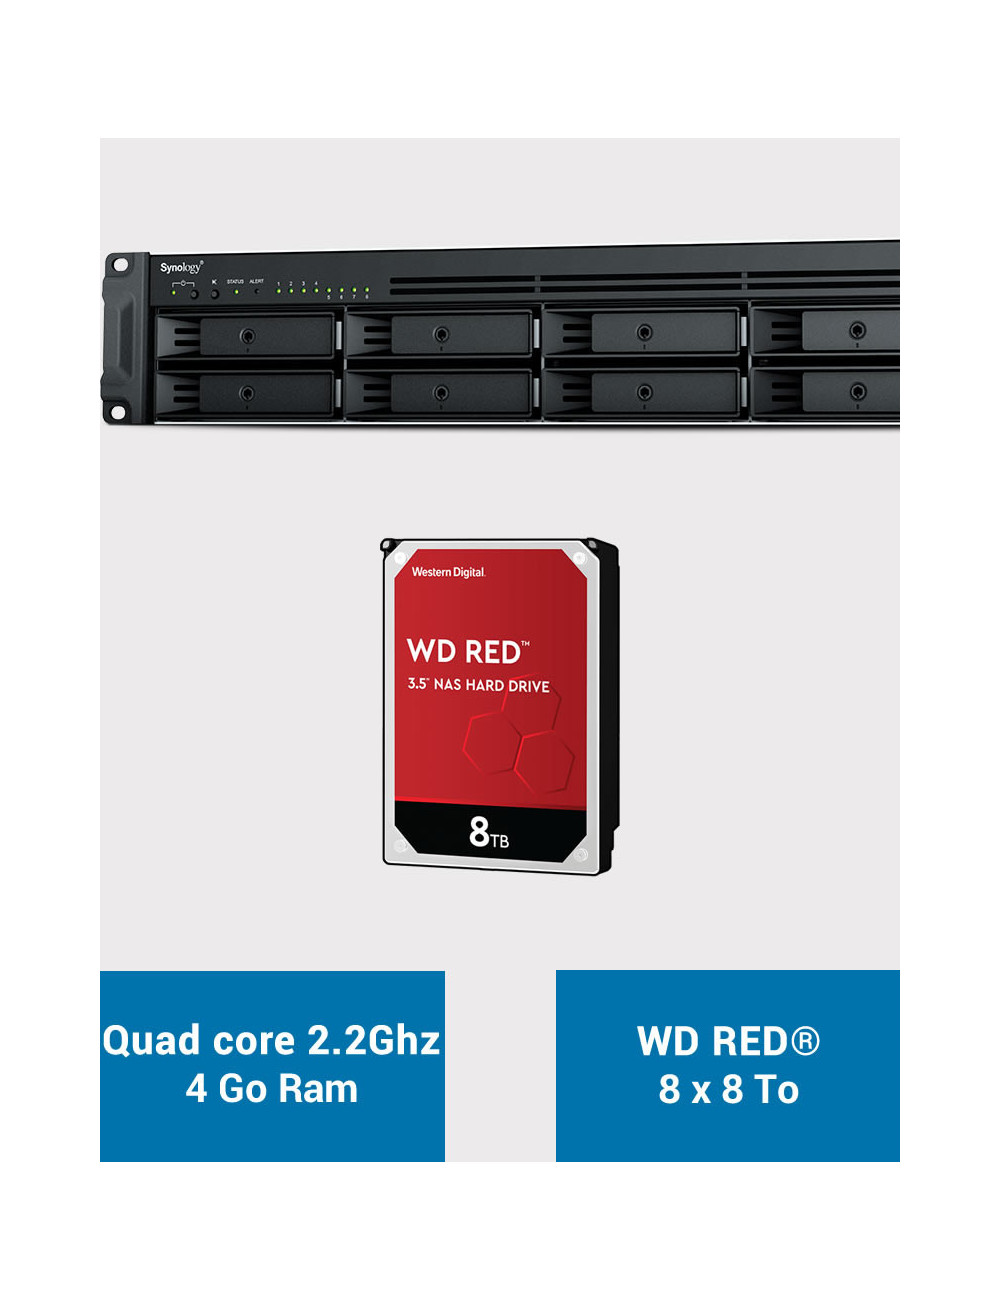 Synology RS1221+ Serveur NAS Rack WD RED 64To (8x8To)